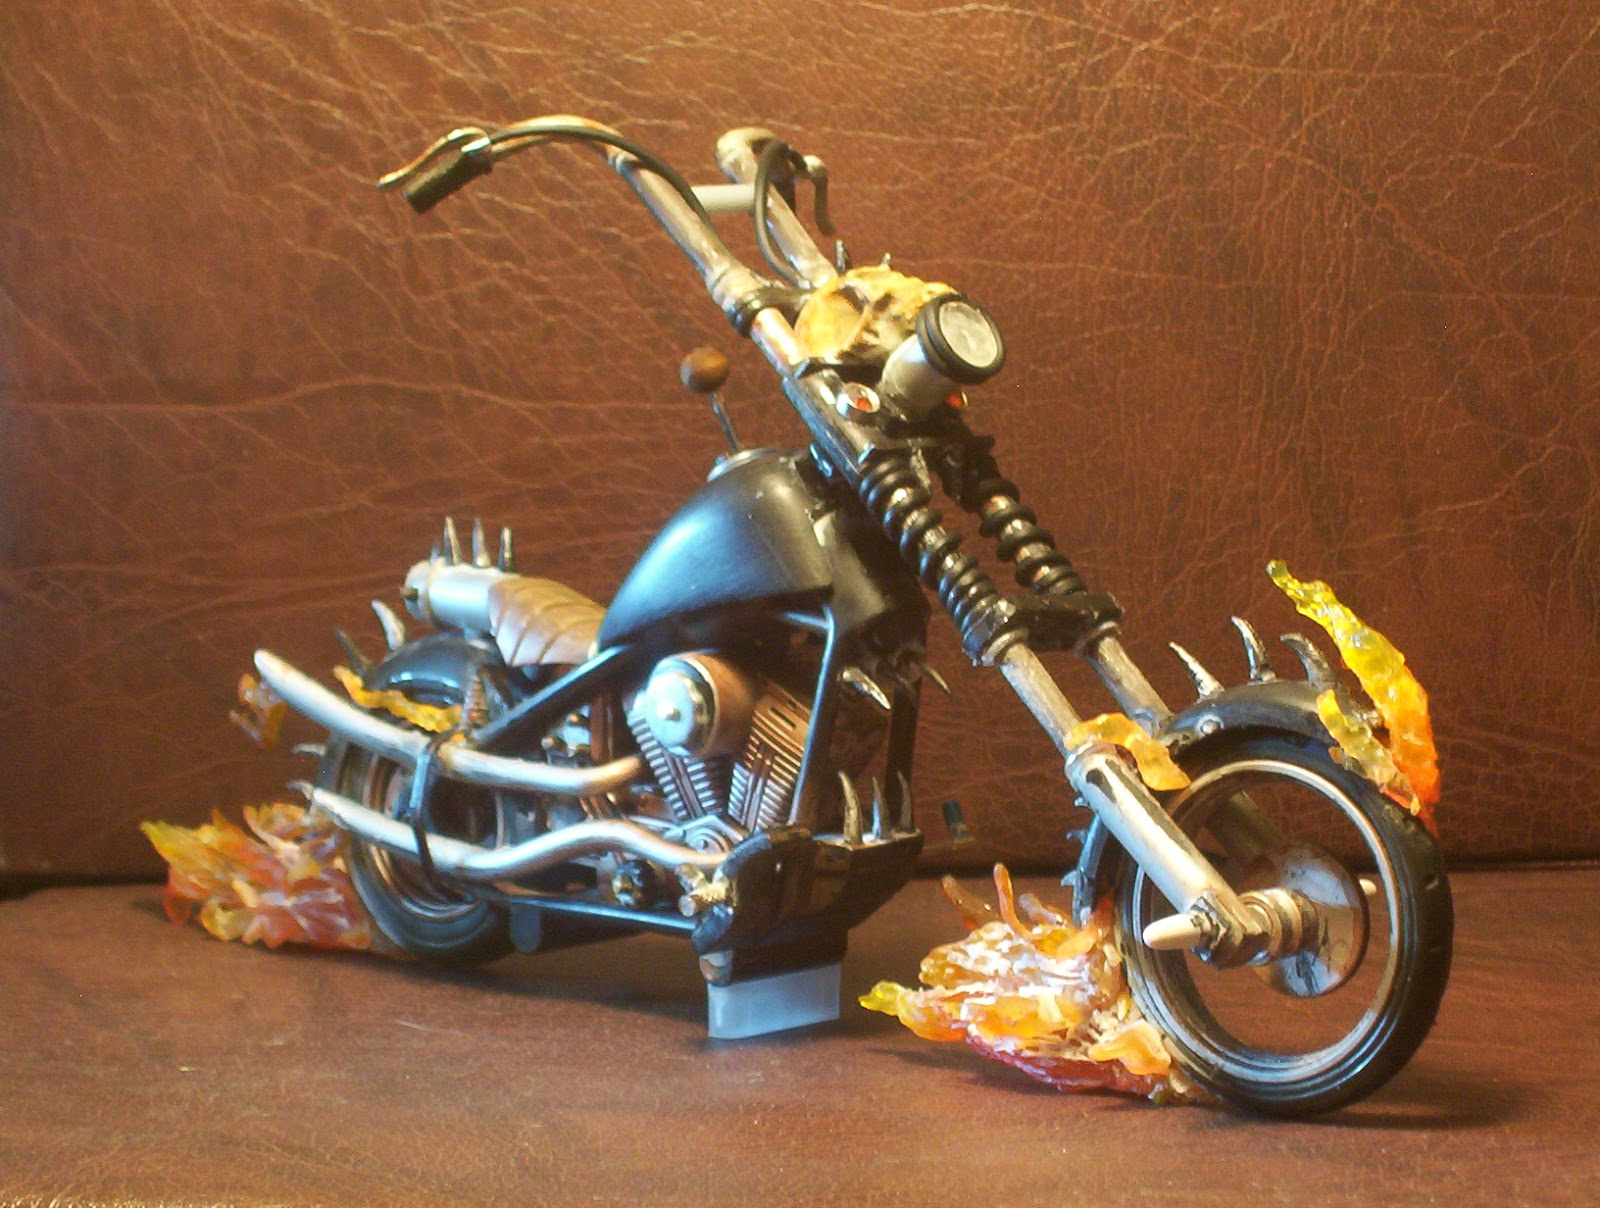 Funny Pictures Gallery: Ghost rider bike, ghost rider bike ...